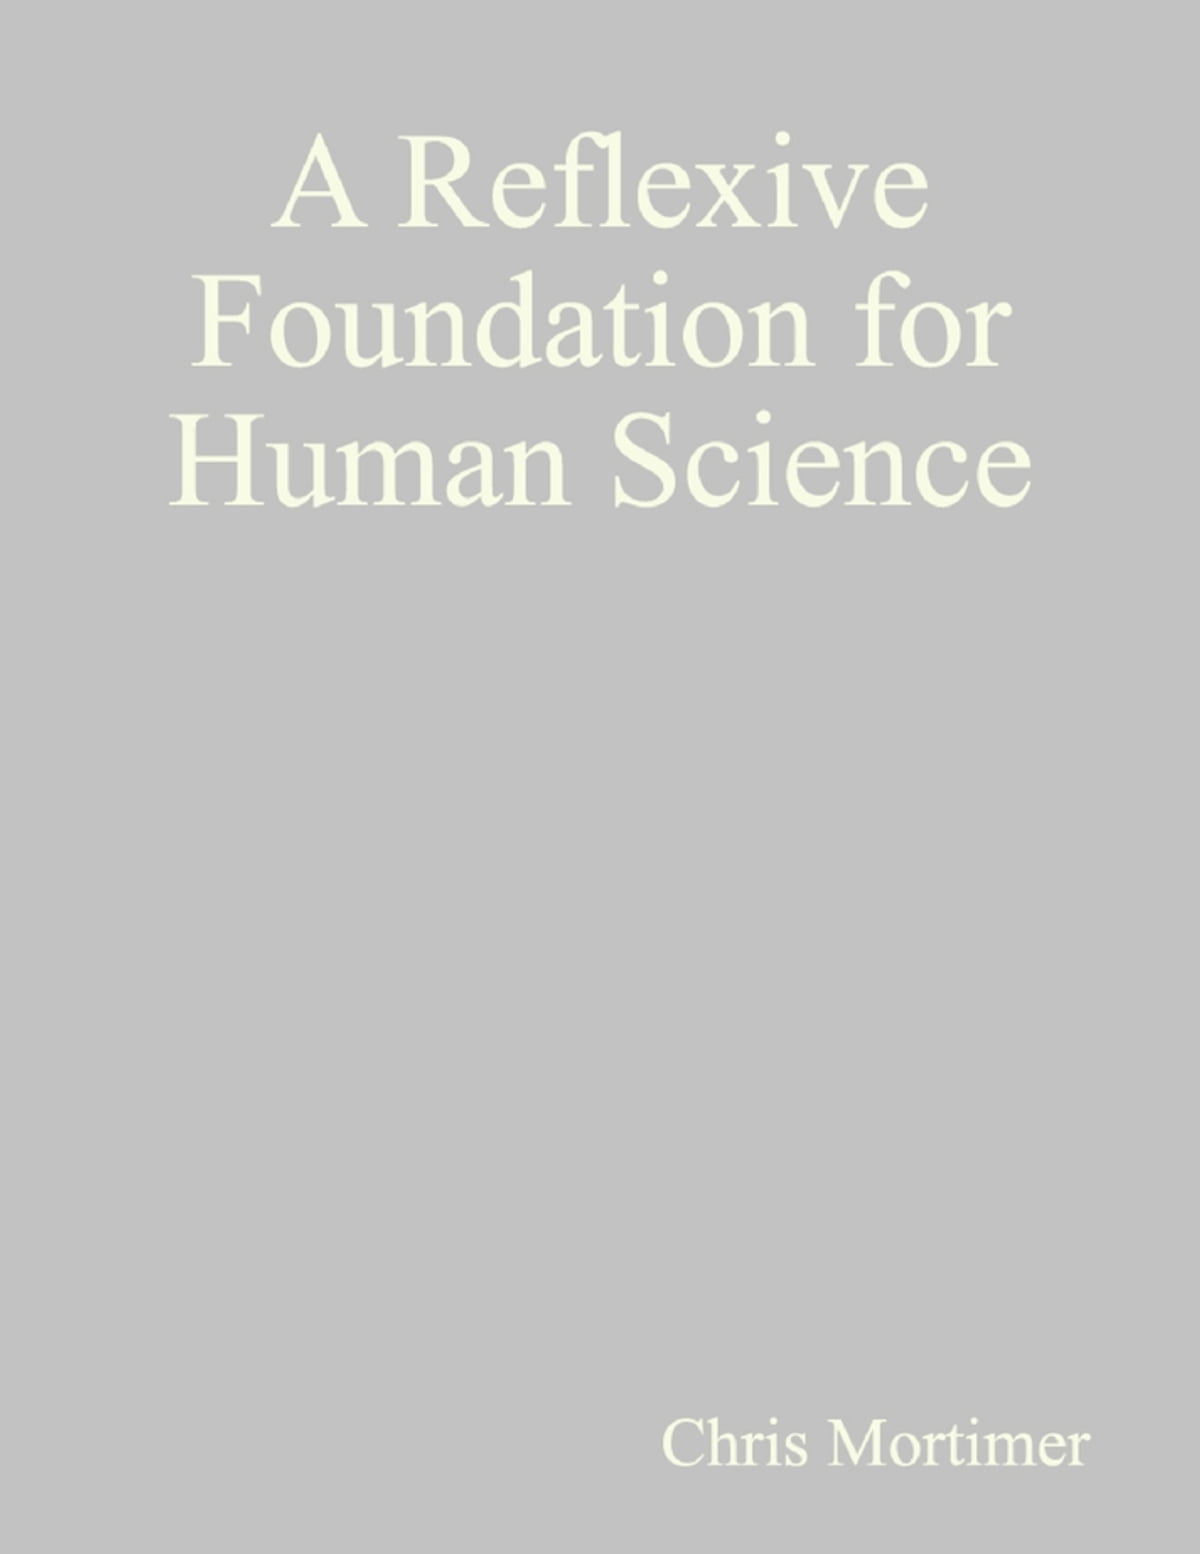 A Reflexive Foundation for Human Science eBook by Chris